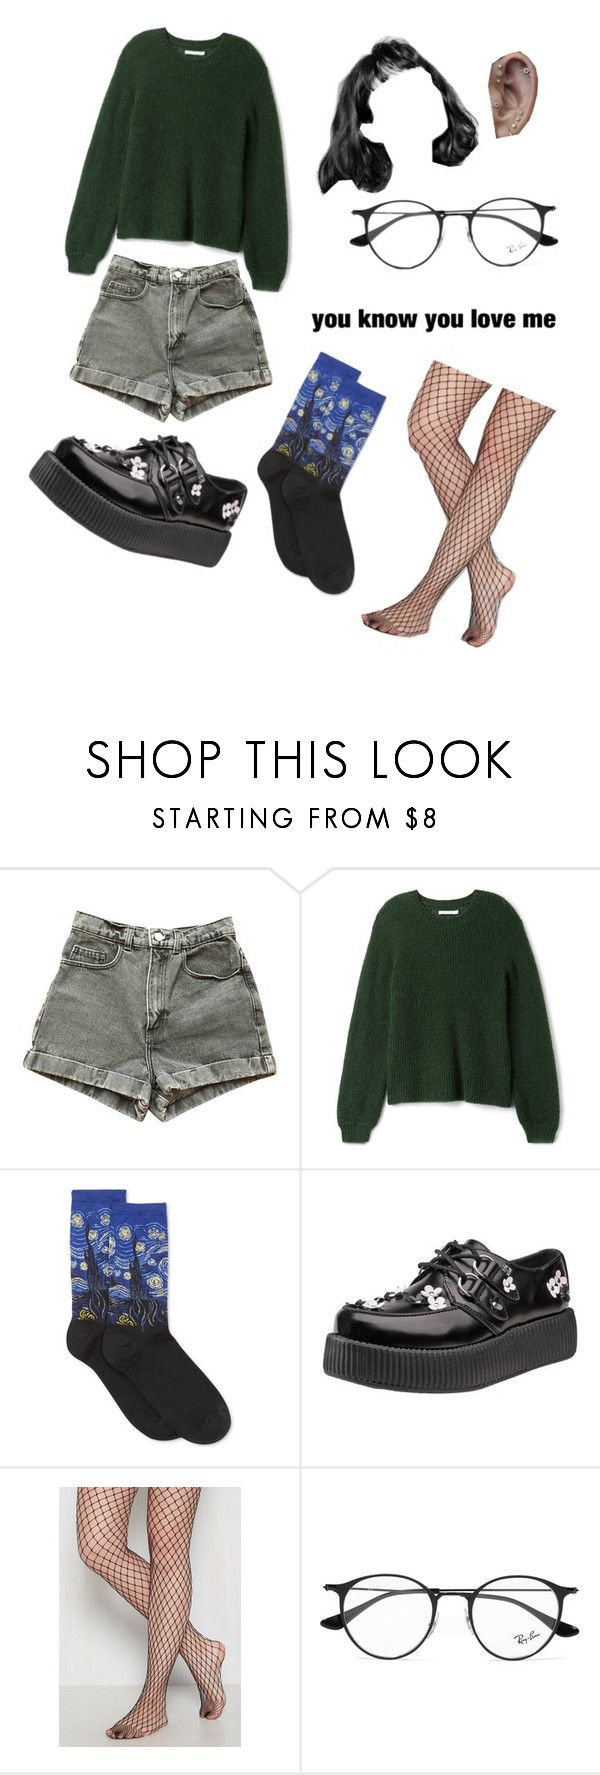 """""""…what's up"""" by metheexcellent ❤ liked on Polyvore featuring American Apparel, HOT SOX and Ray-Ban"""